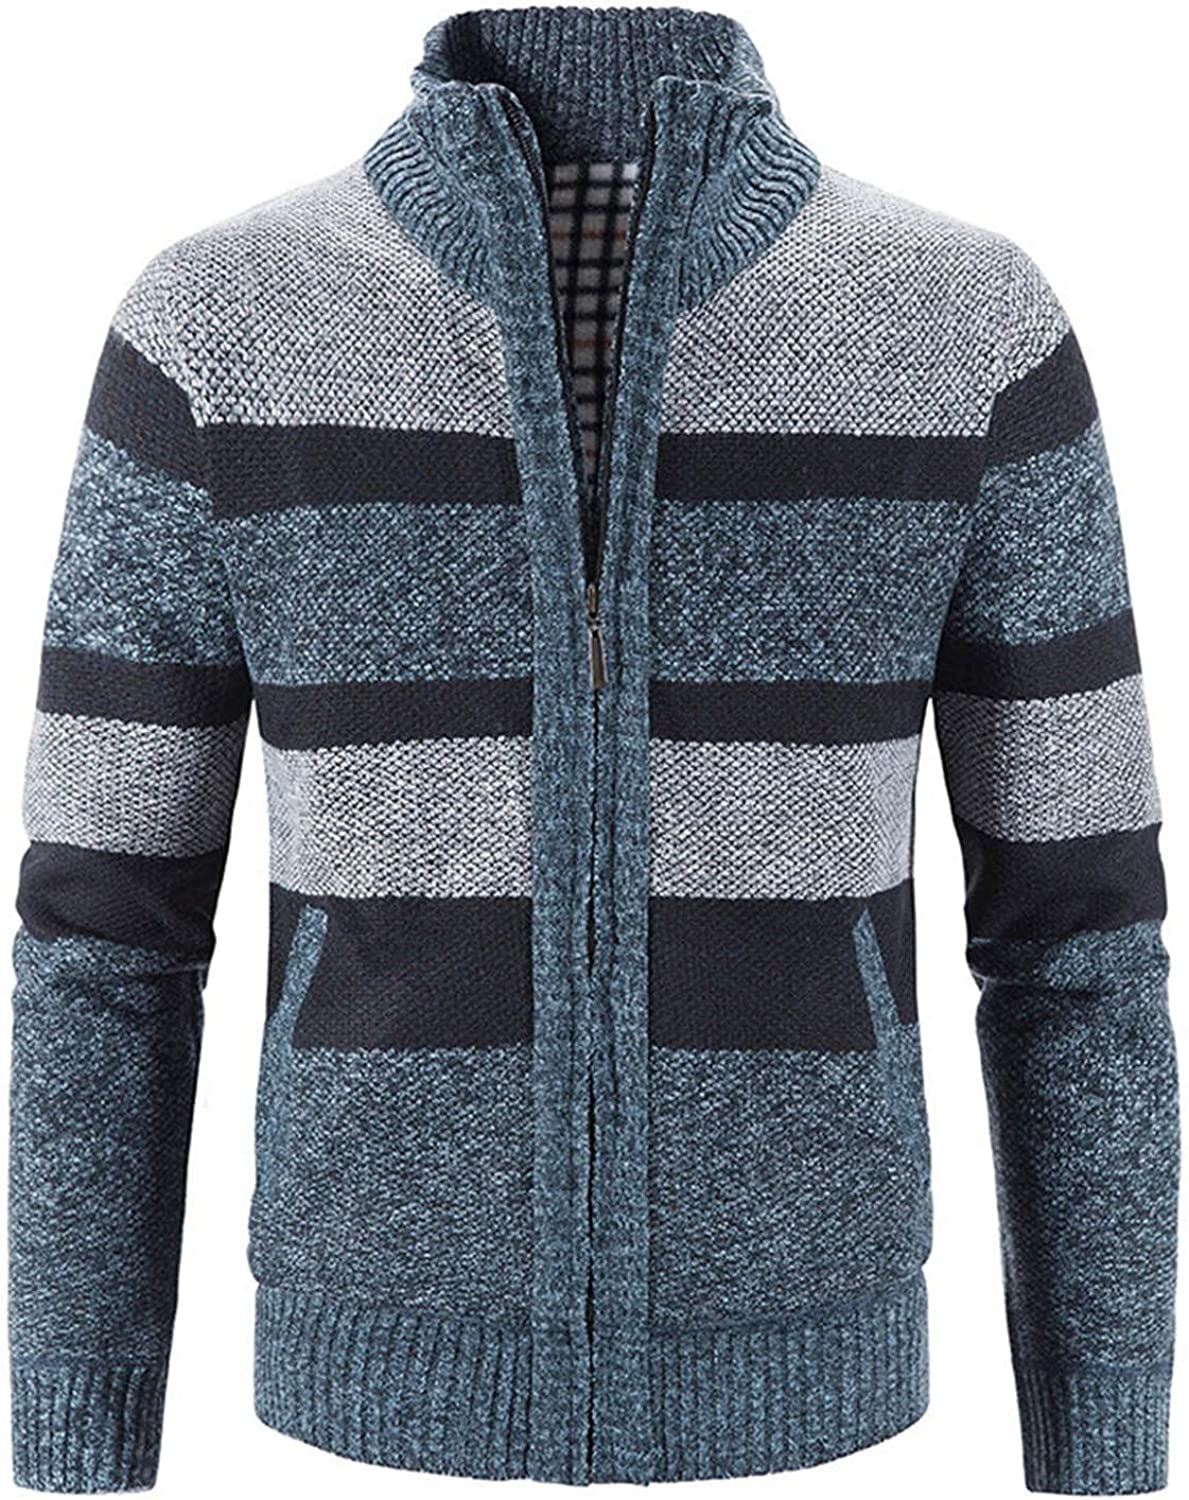 Burband Mens Casual Stand Collar Stripes Zipper Knitted Cardigan Sweaters Christmas Reindeer Snowflake Pullover Sweaters